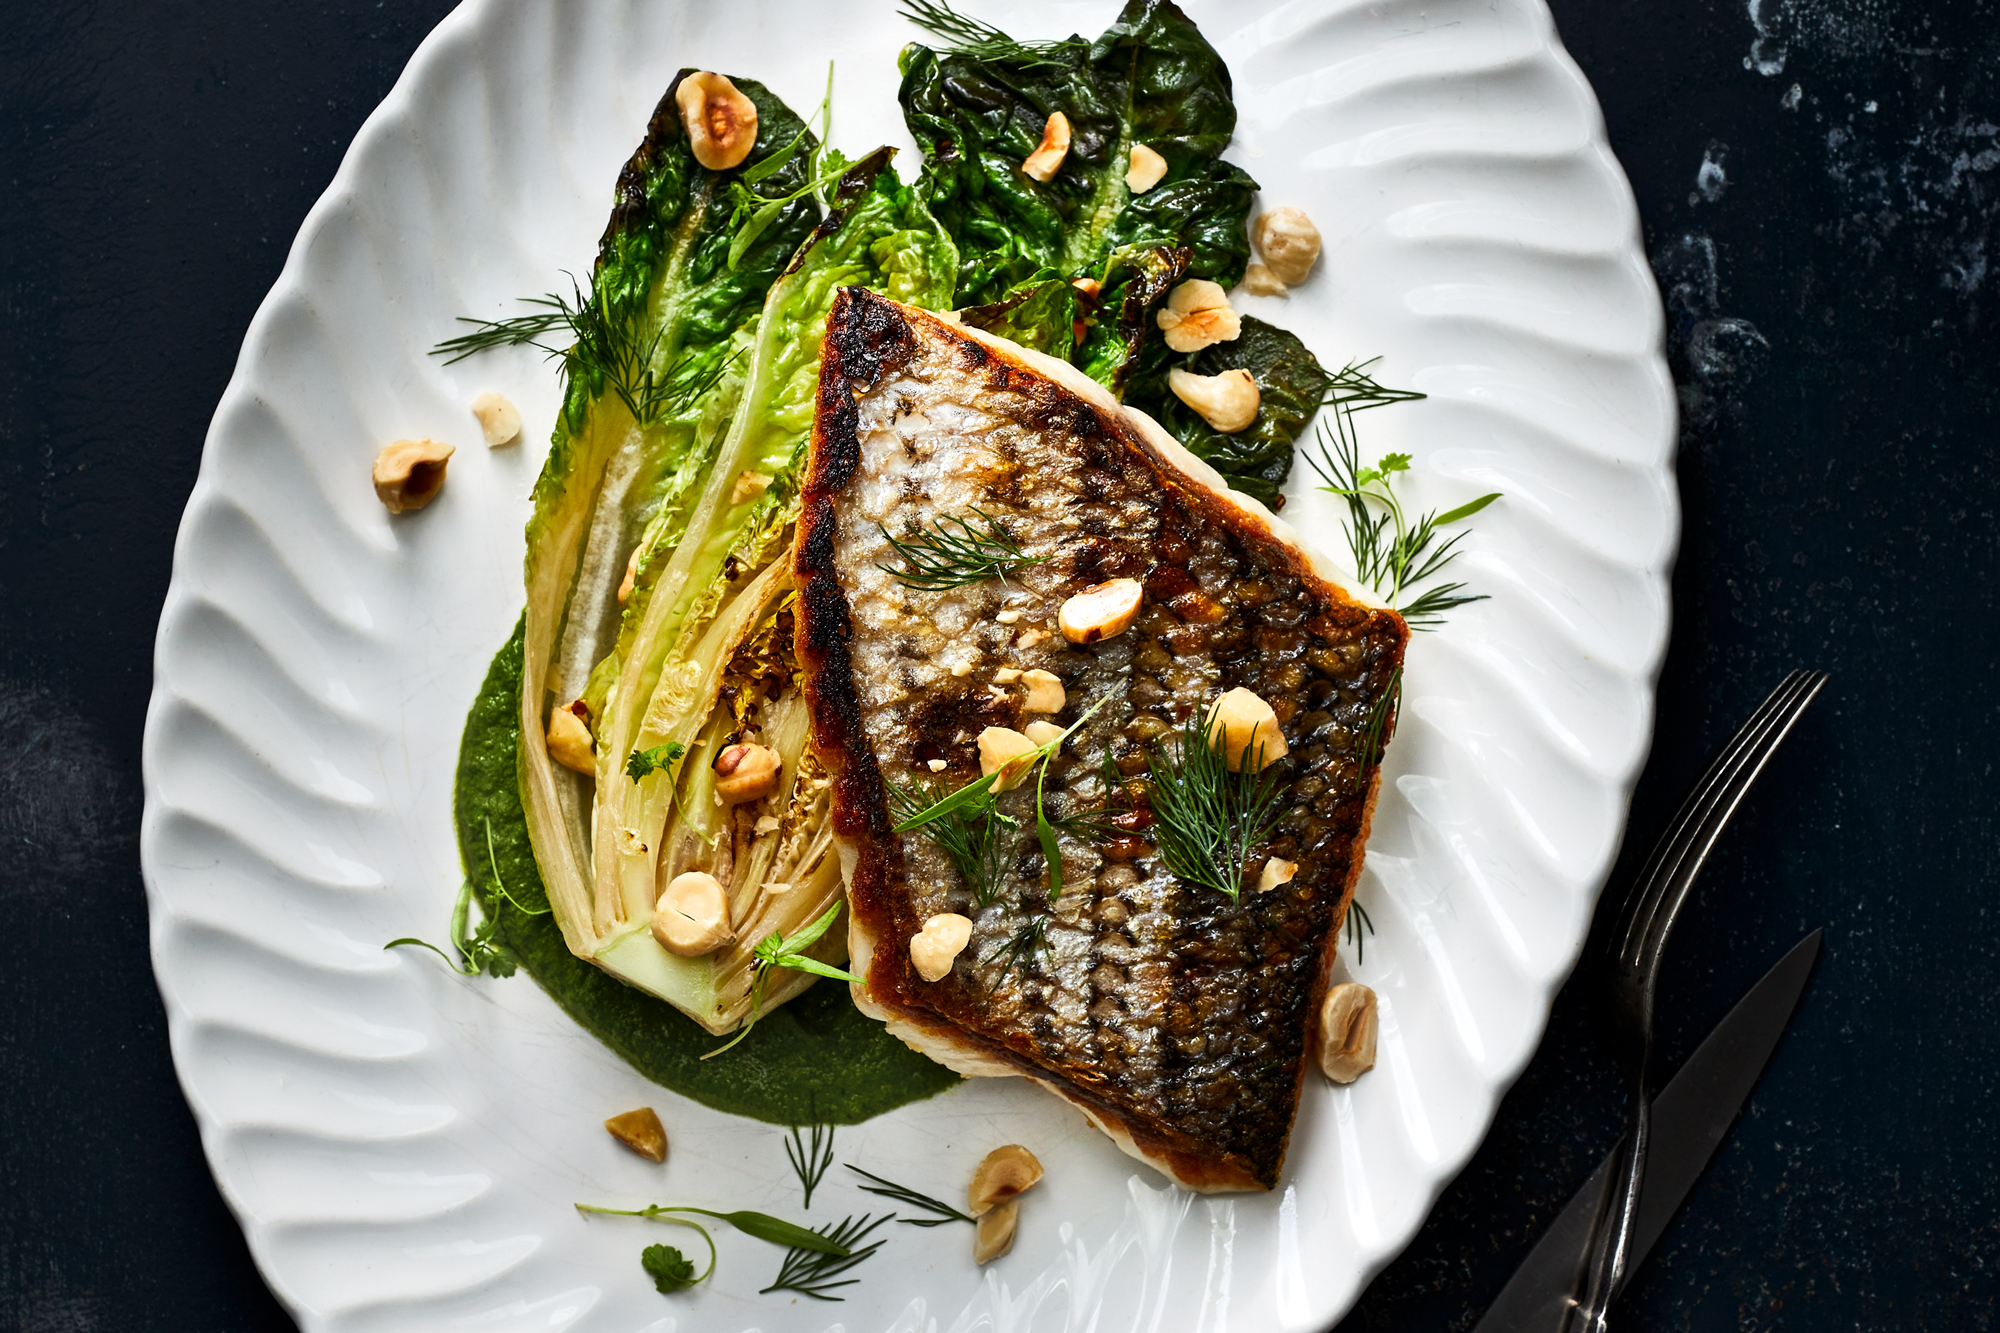 Crispy-Skinned Bass with Braised Lettuce and Green Goddess Dressing Recipe